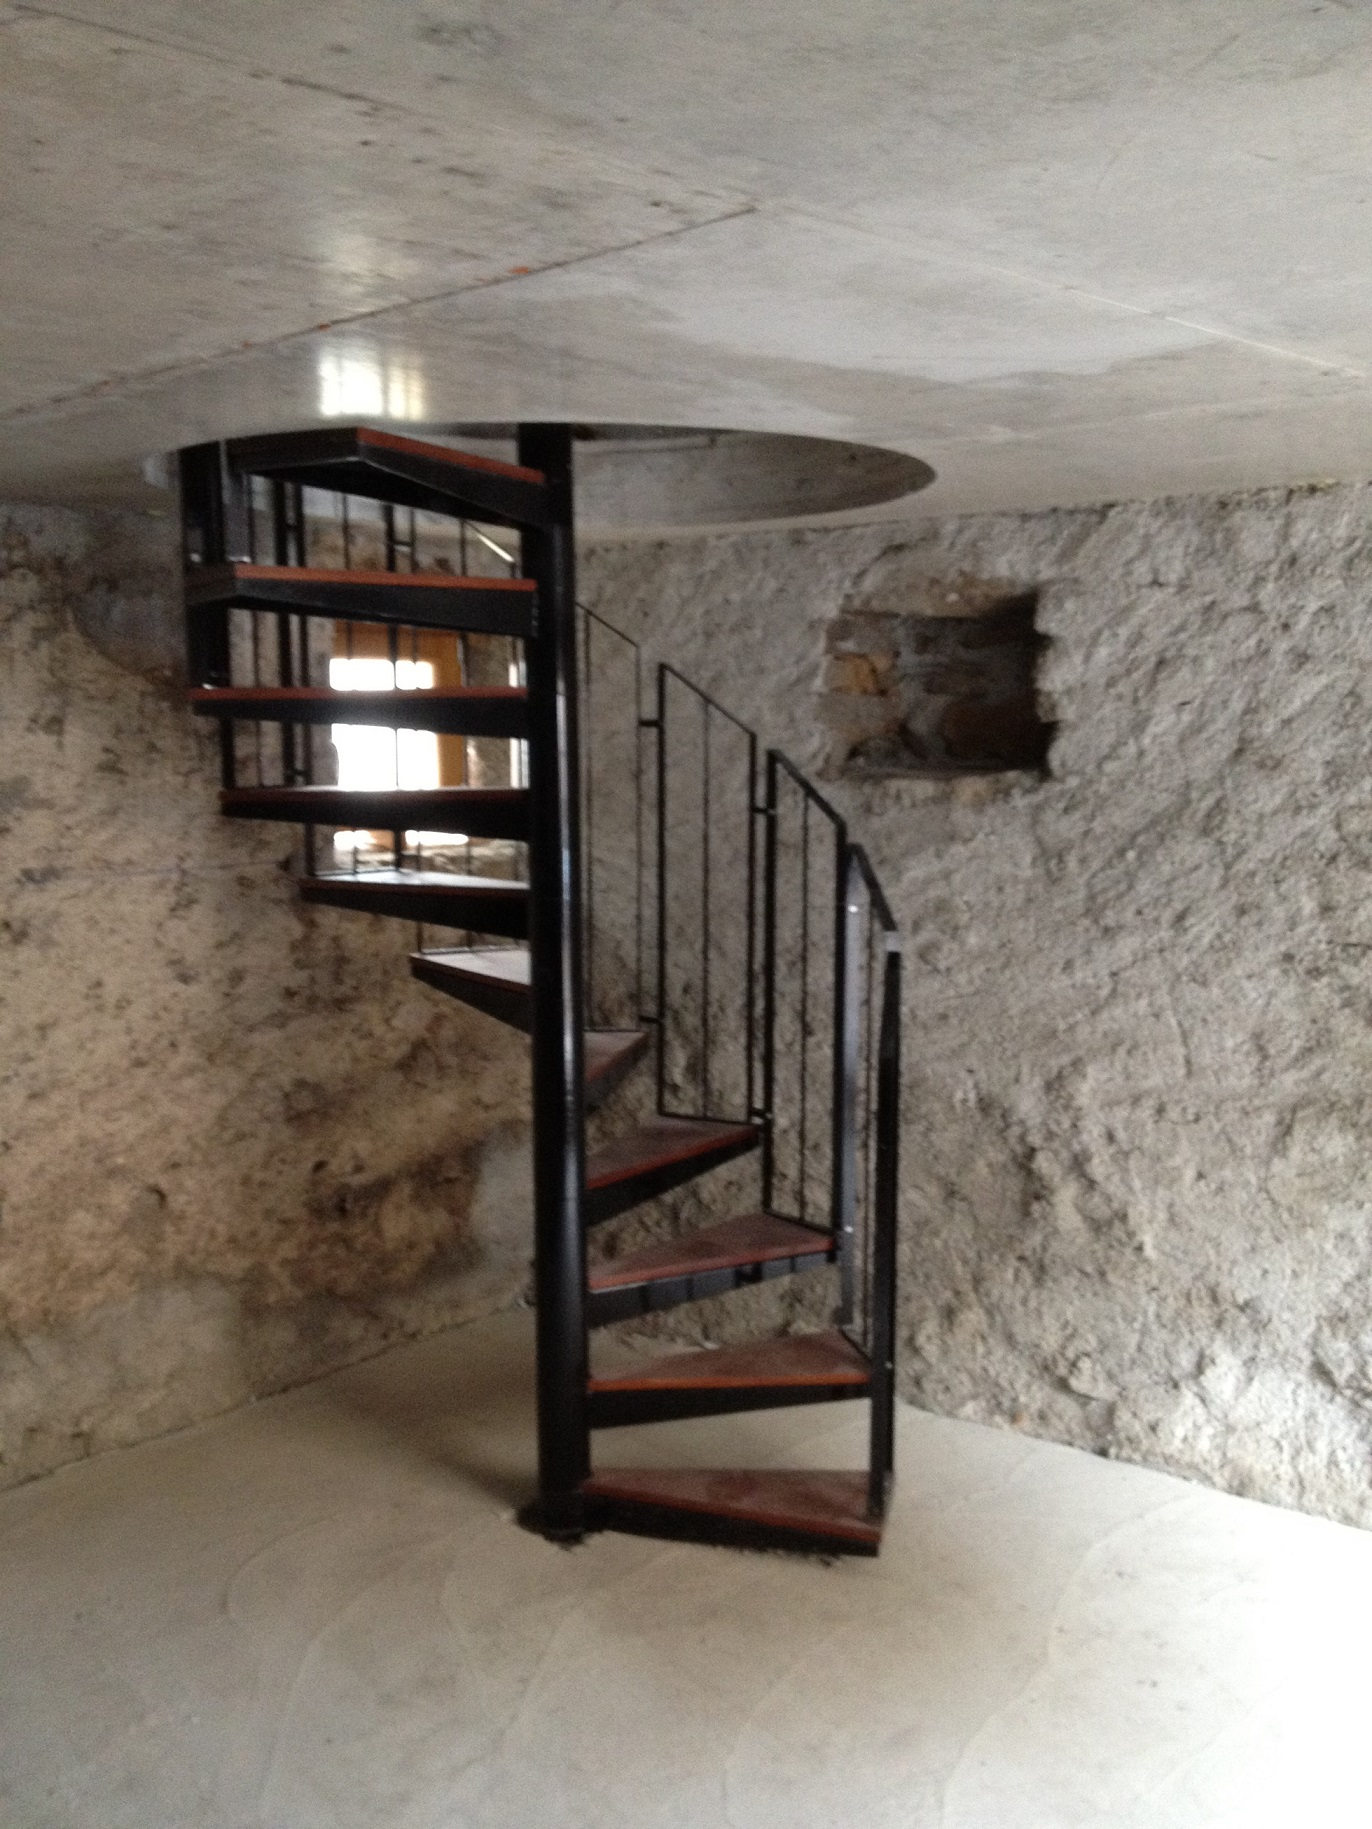 Menuiserie bourcy escalier colima on de cave for Amenager escalier interieur